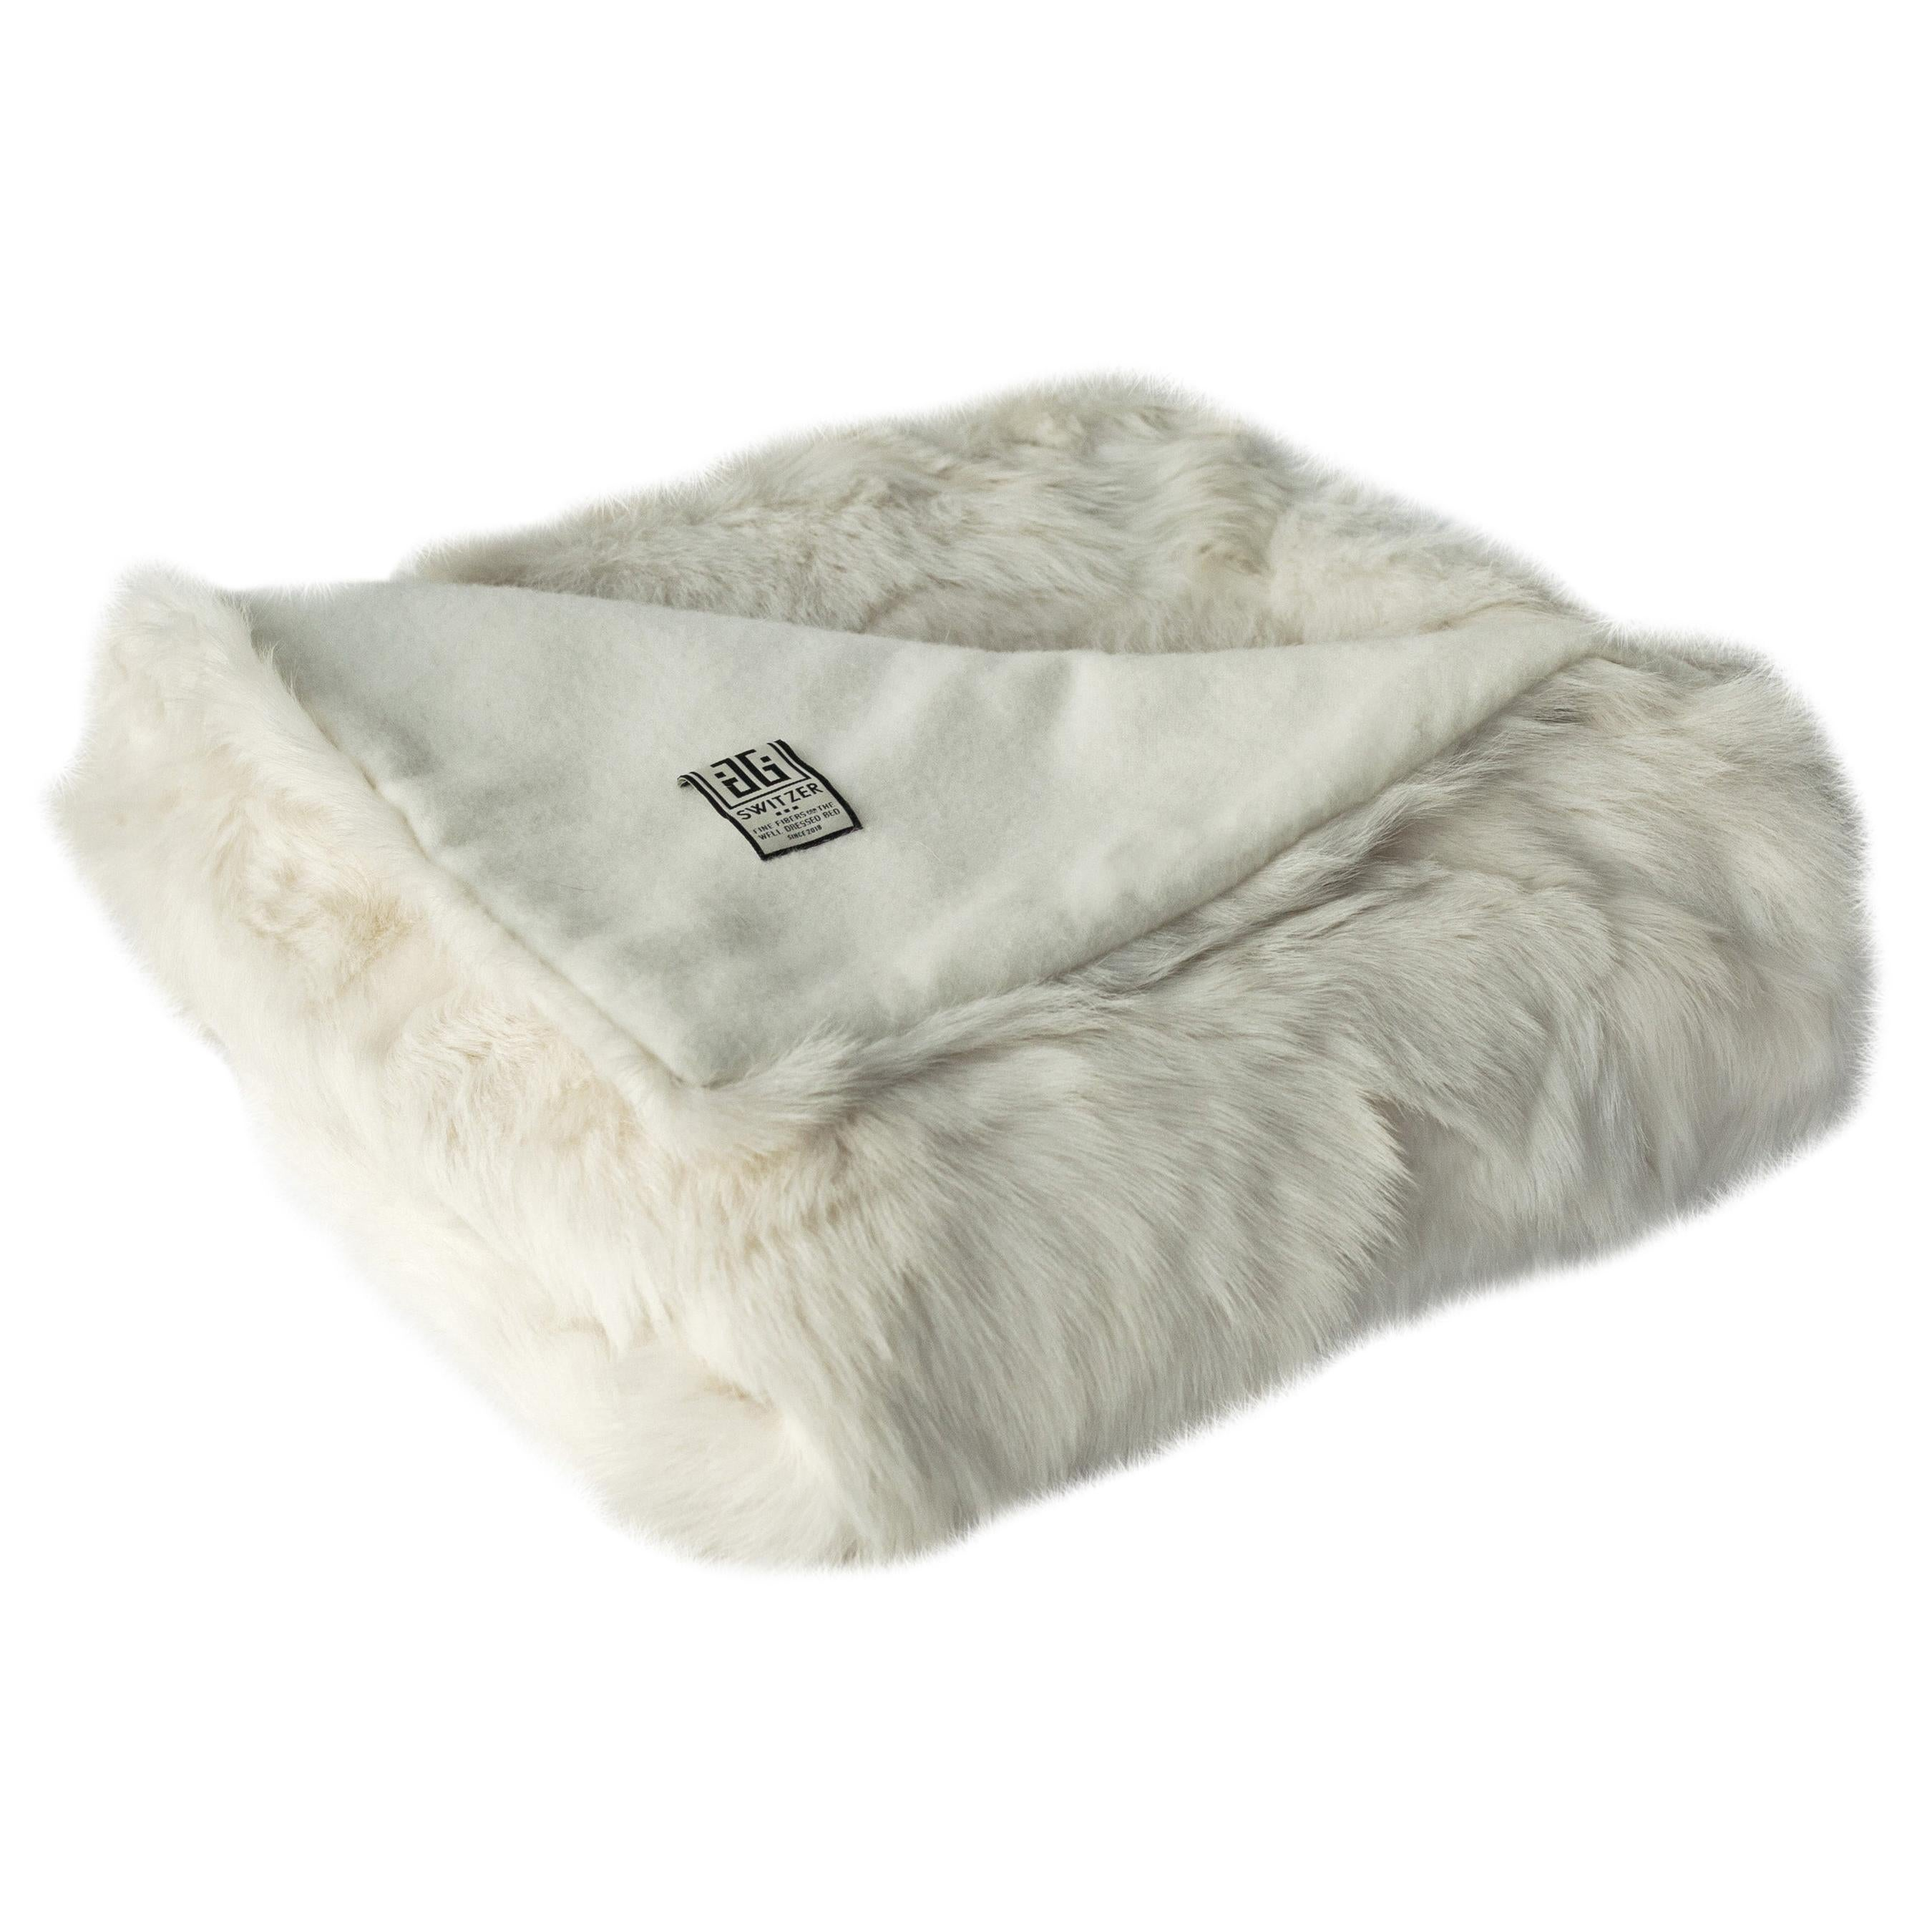 JG Switzer Toscana Sheep Fur White Throw Backed with Lambswool/Cashmere